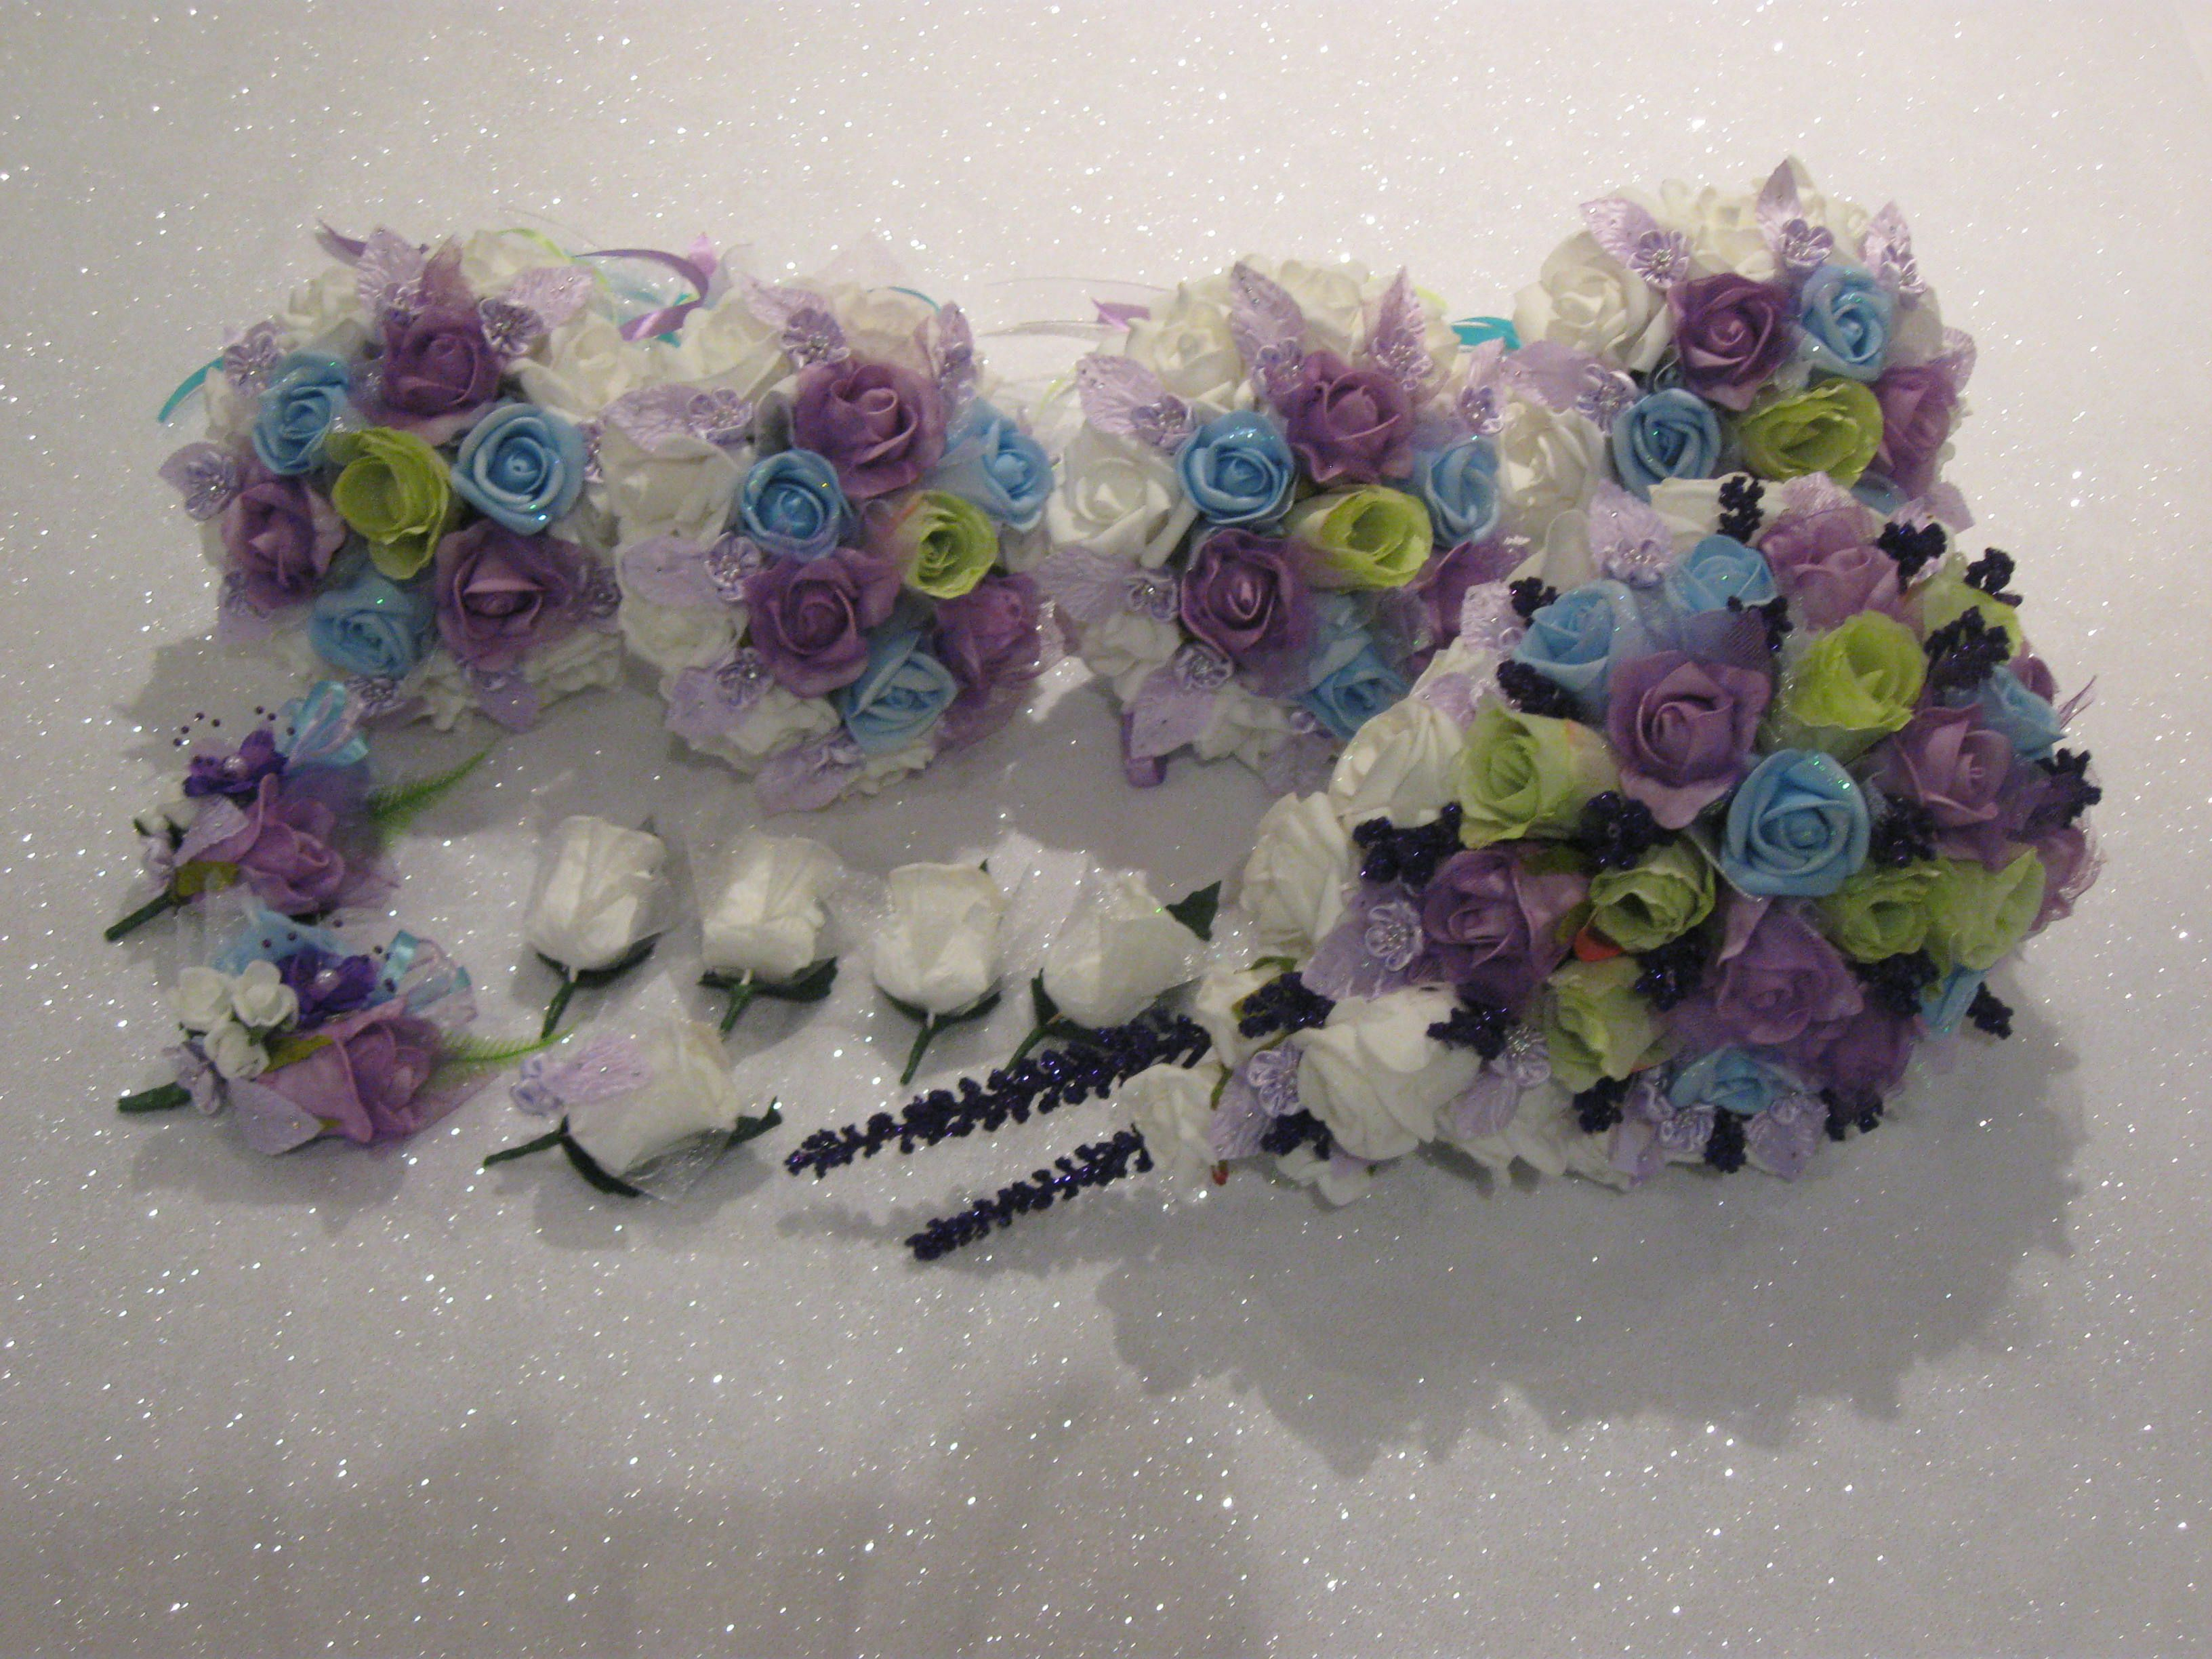 Image detail for -Blue, Purple, WHite & Green Rose Wedding Bouquets Set - Lavender